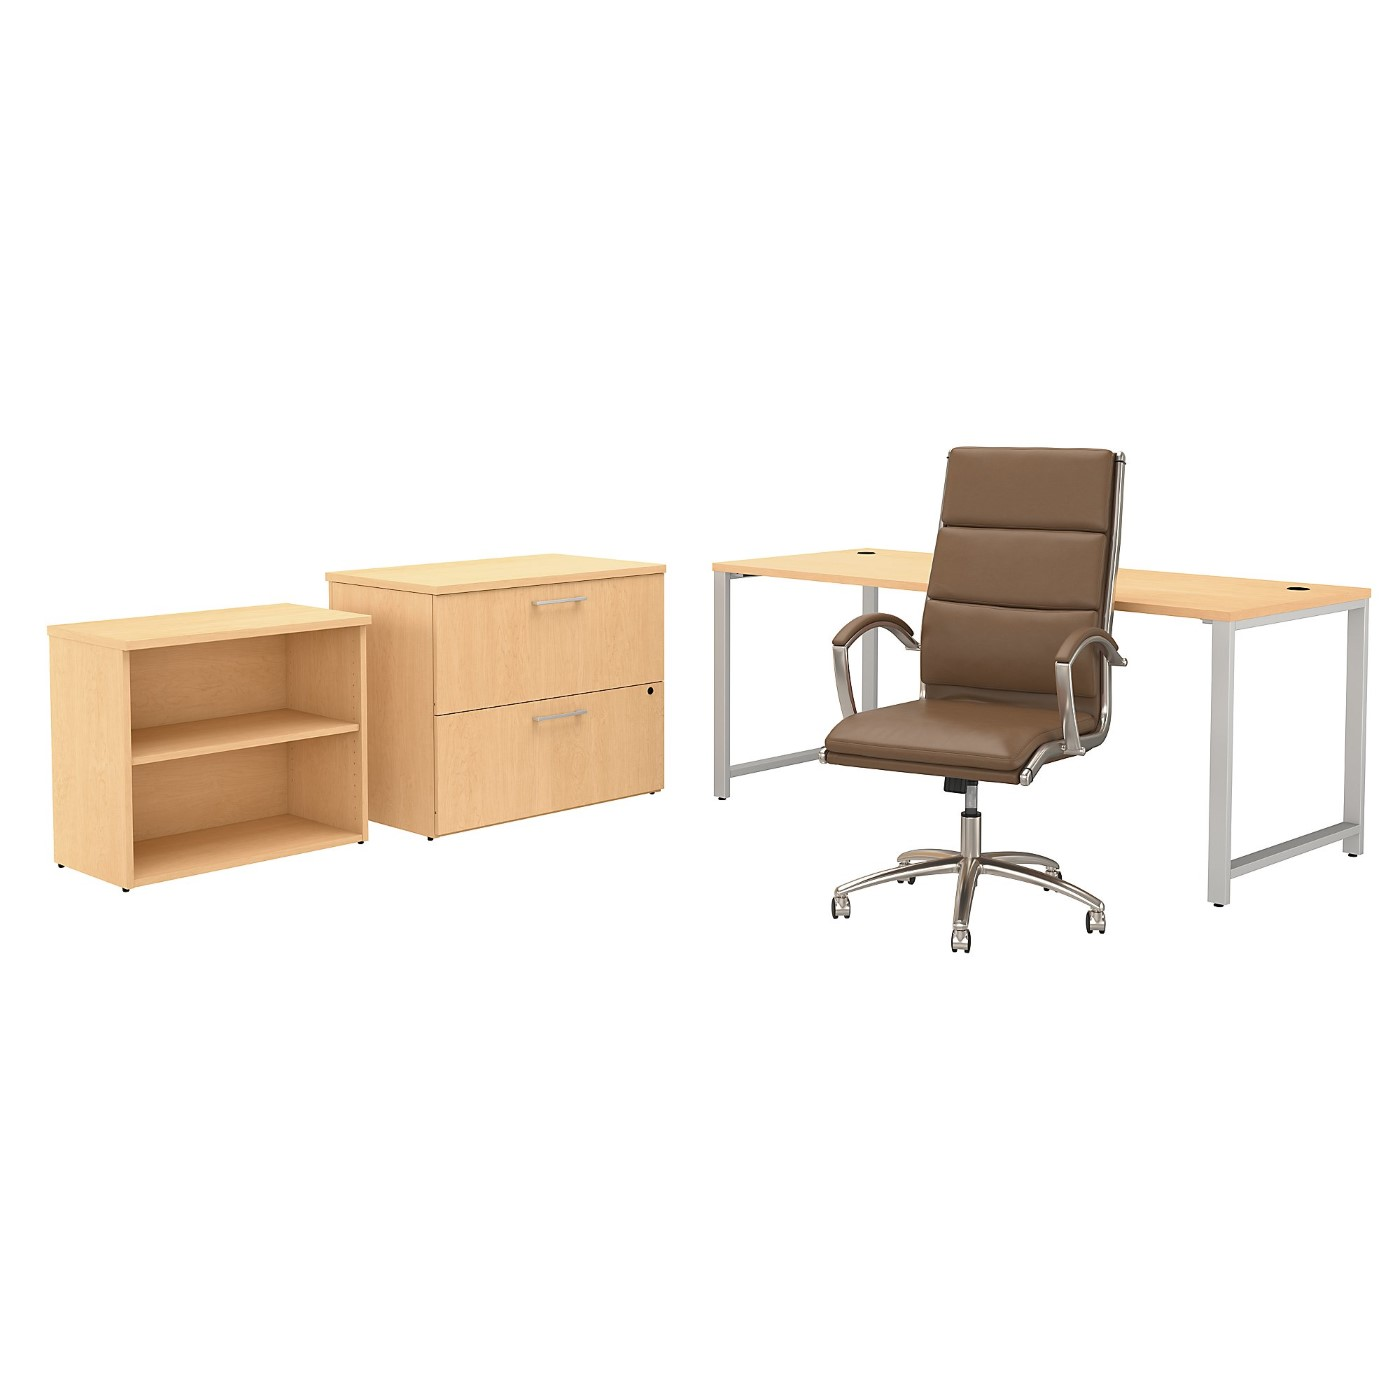 BUSH BUSINESS FURNITURE 400 SERIES 72W X 30D TABLE DESK AND CHAIR SET WITH STORAGE. FREE SHIPPING